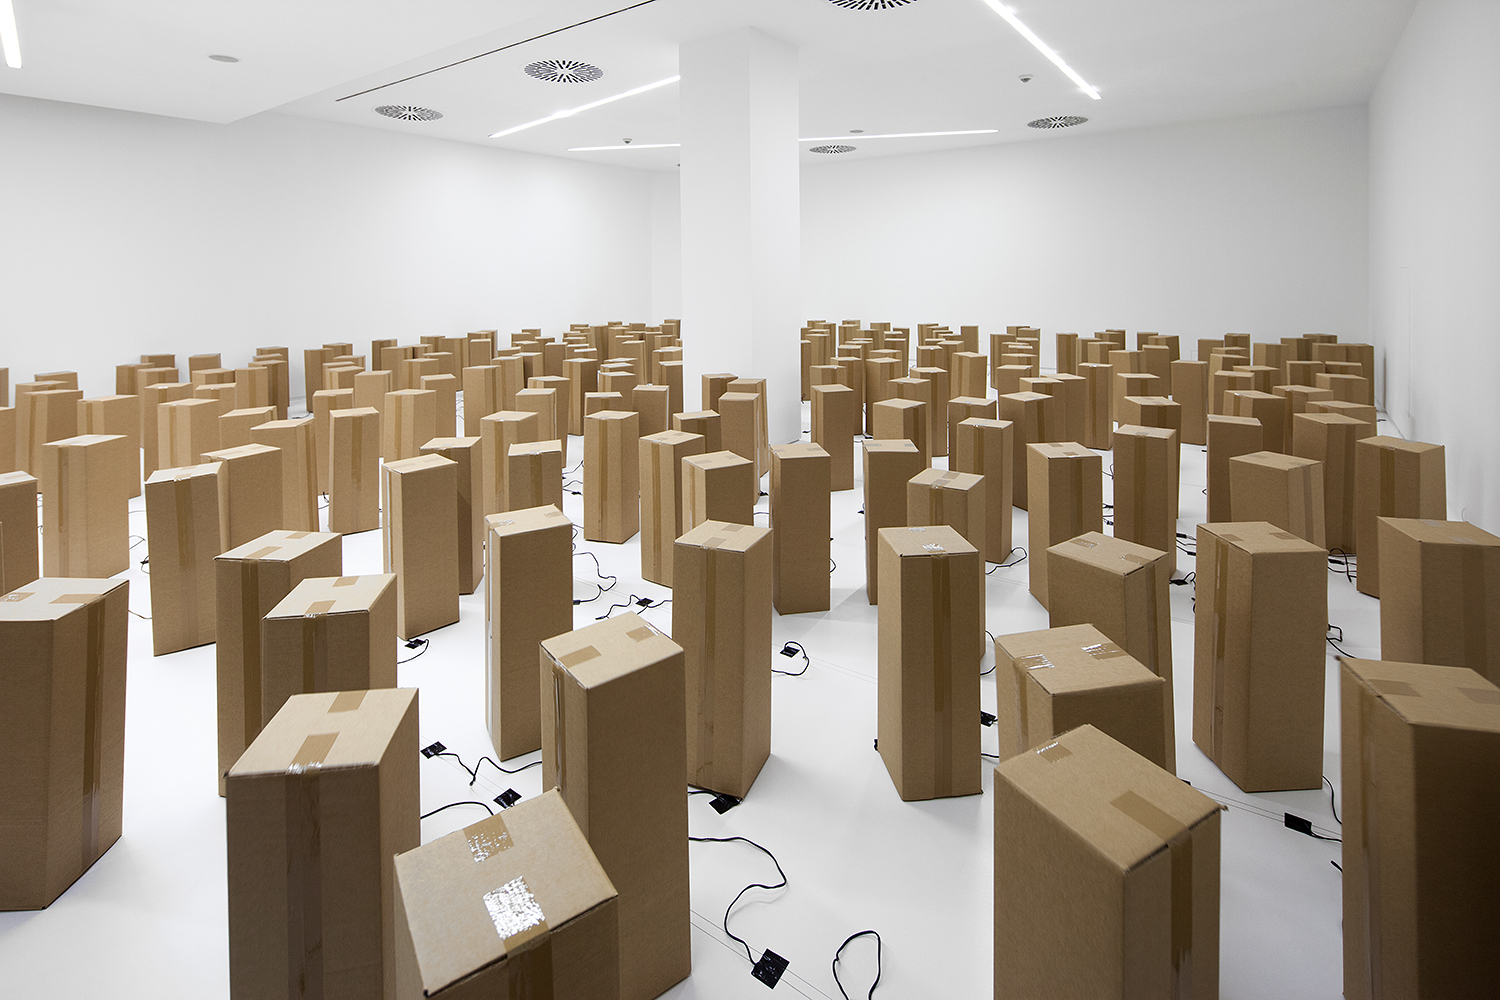 Sound amp Art Installation Out Of Cardboard Boxes Design Milk